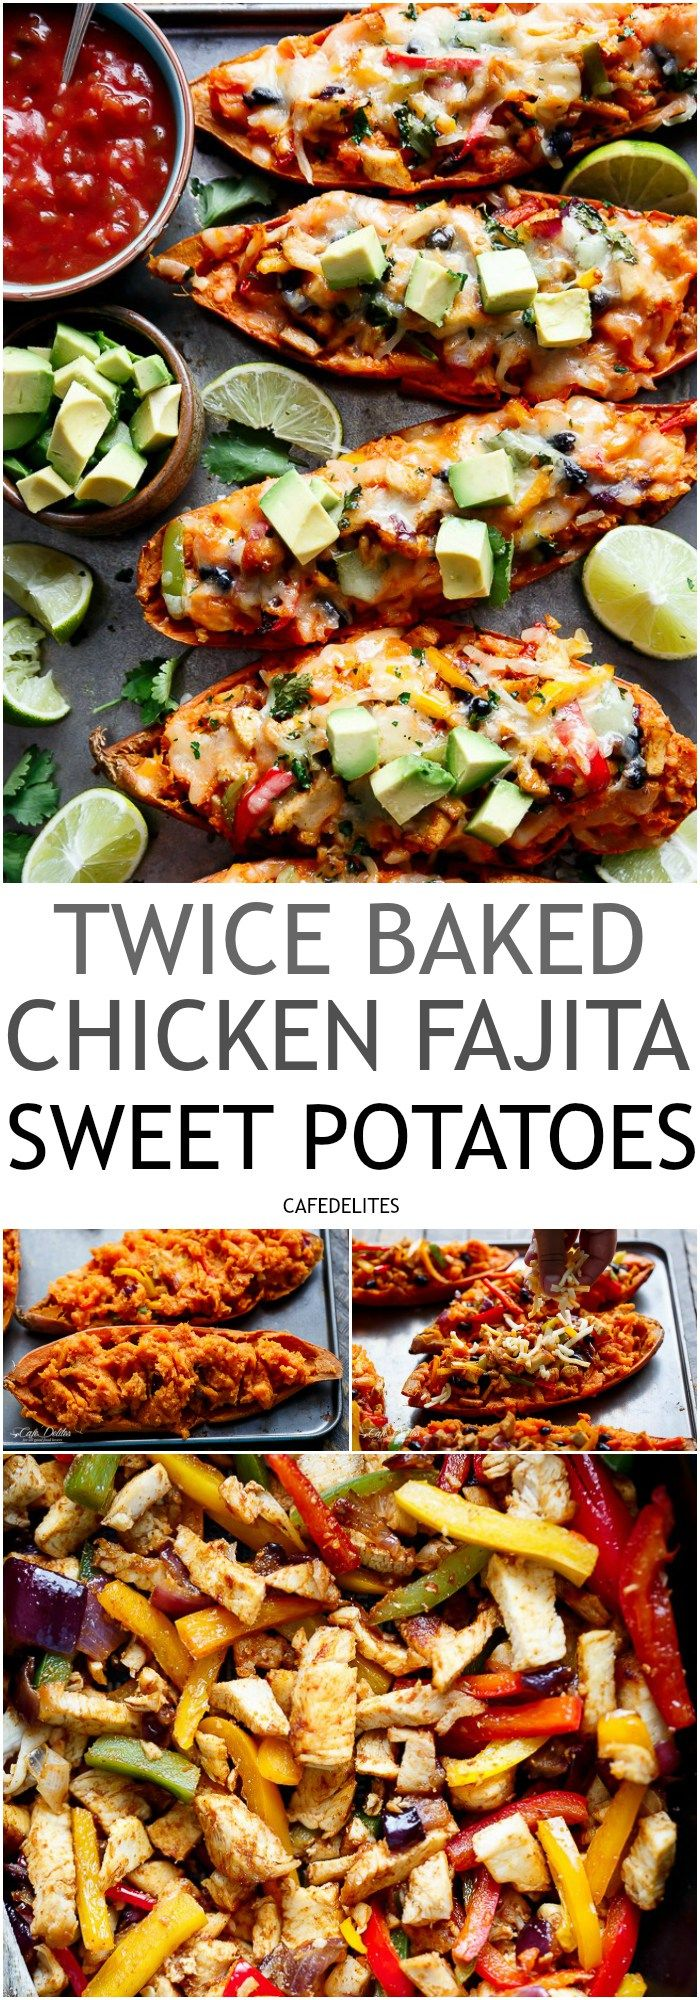 Fajita stuffed sweet potatoes